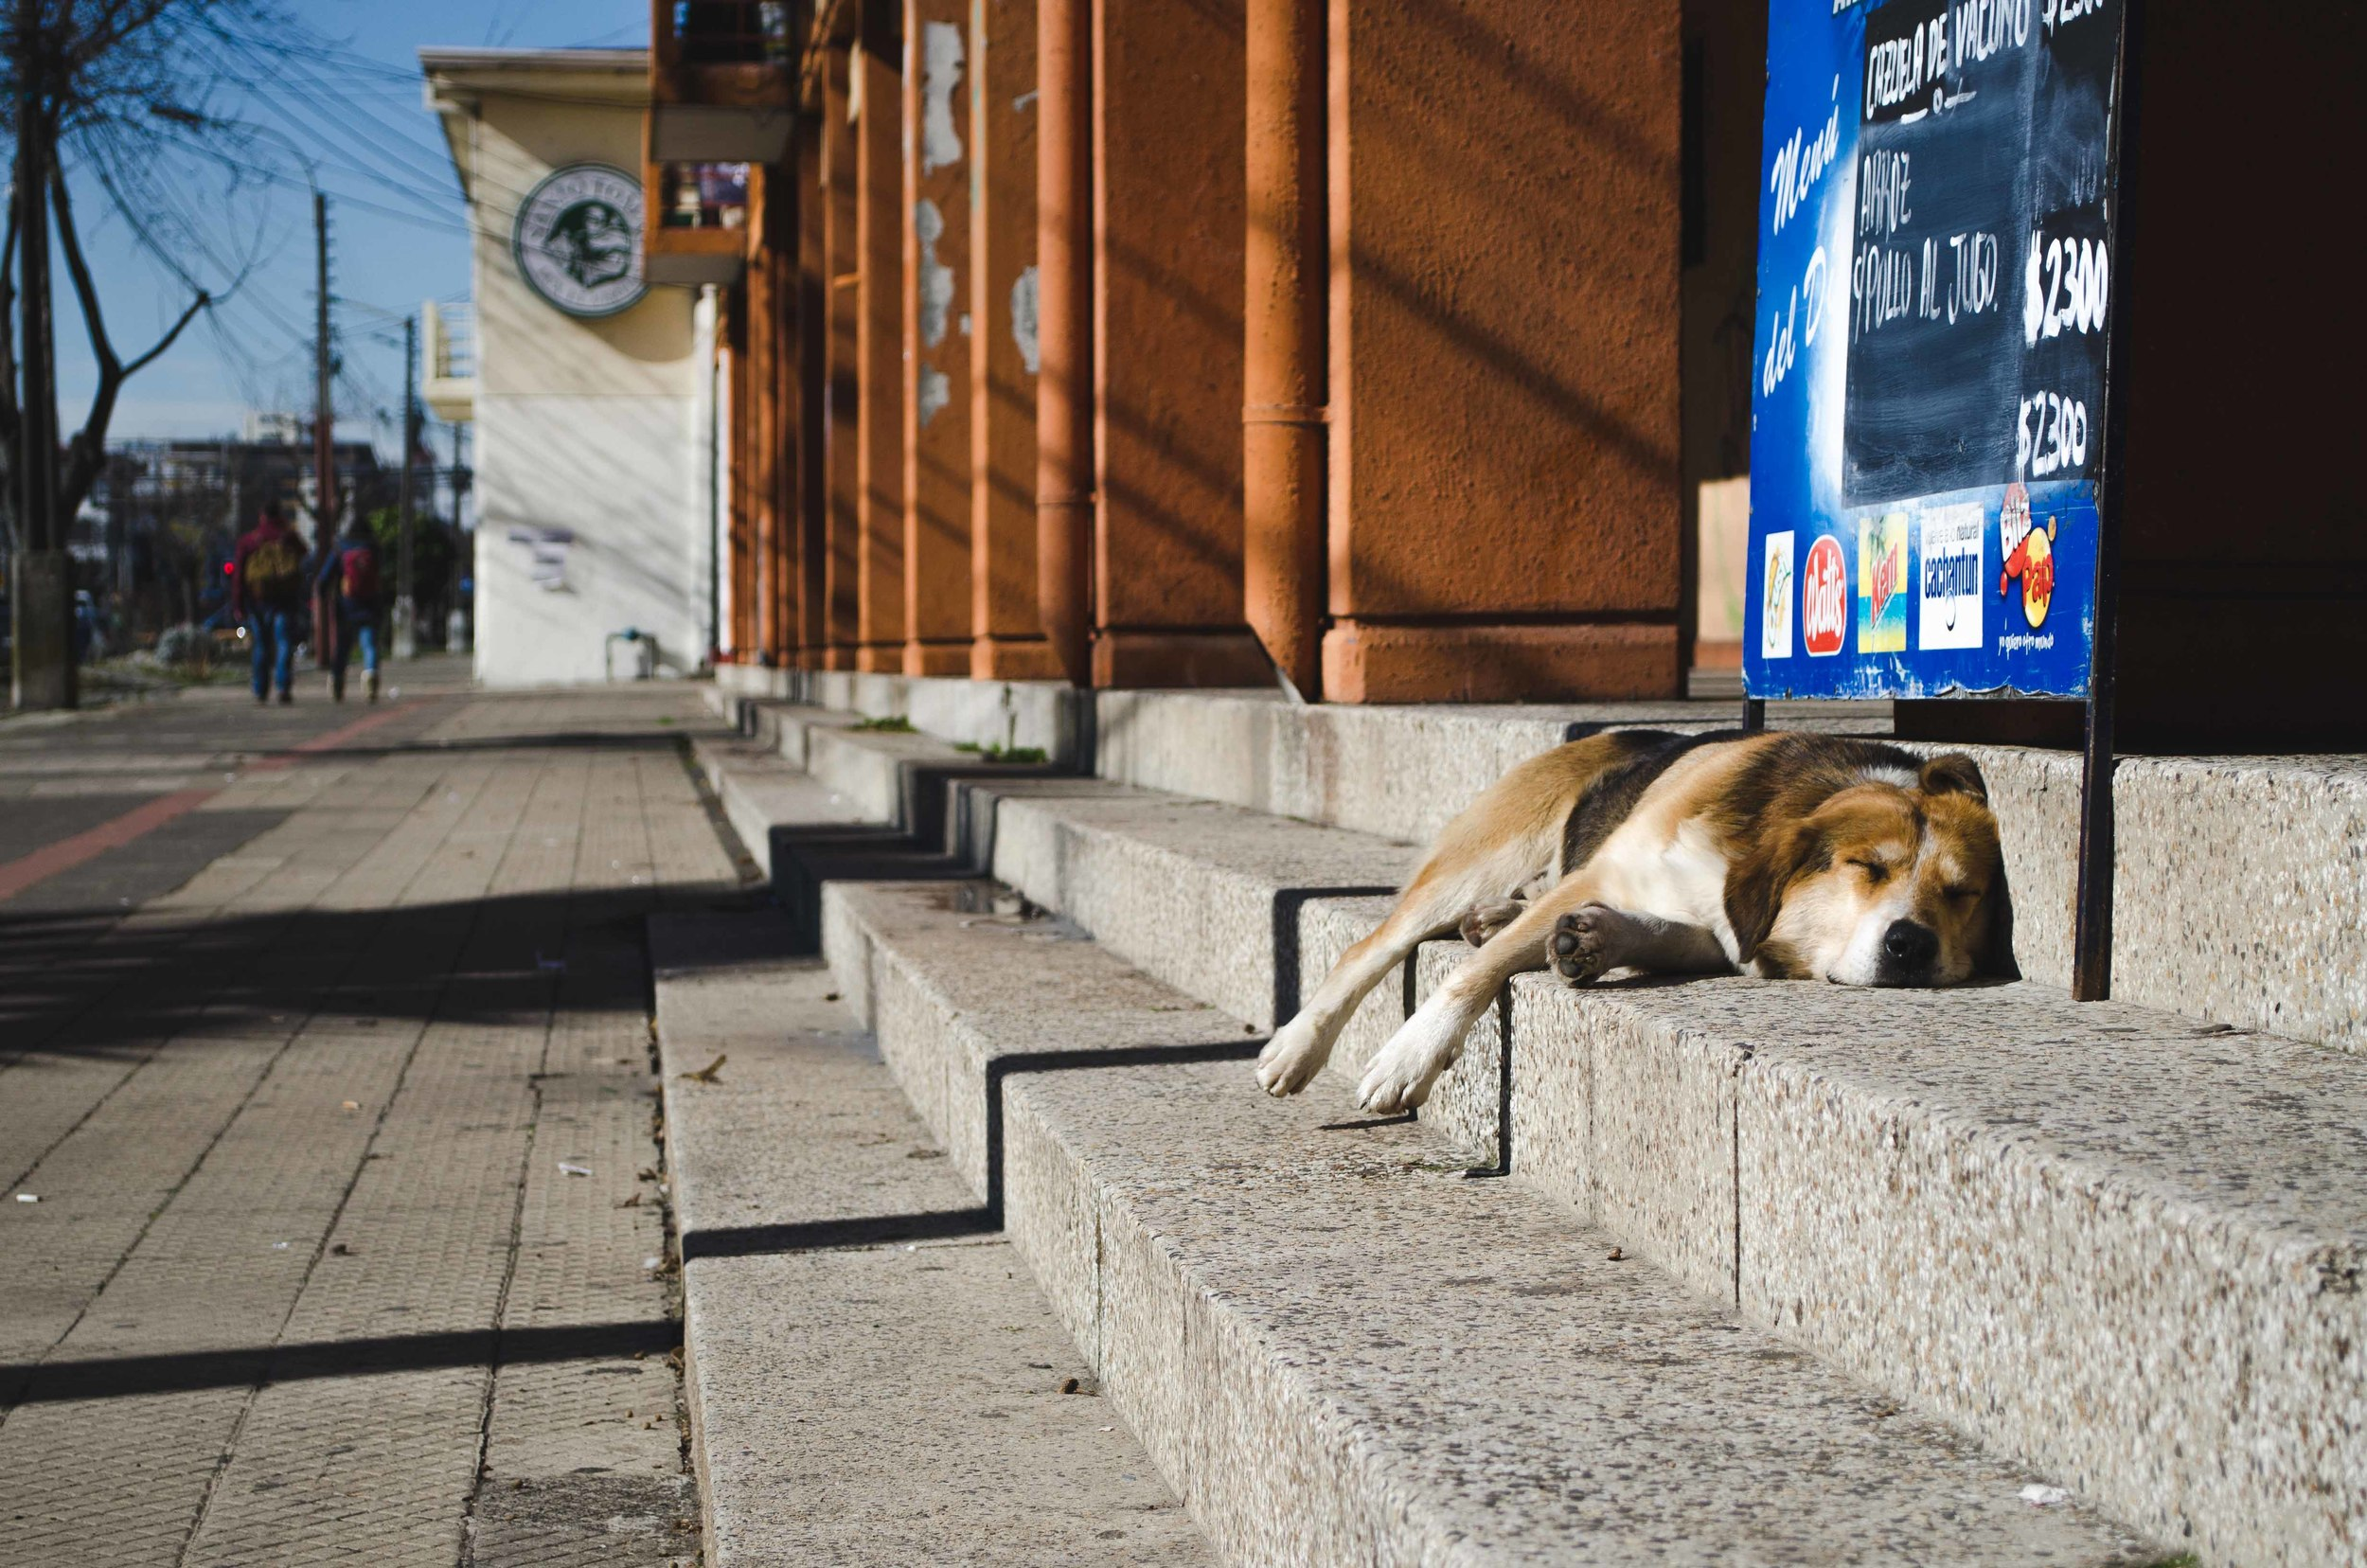 A street dog naps in Talca, Chile